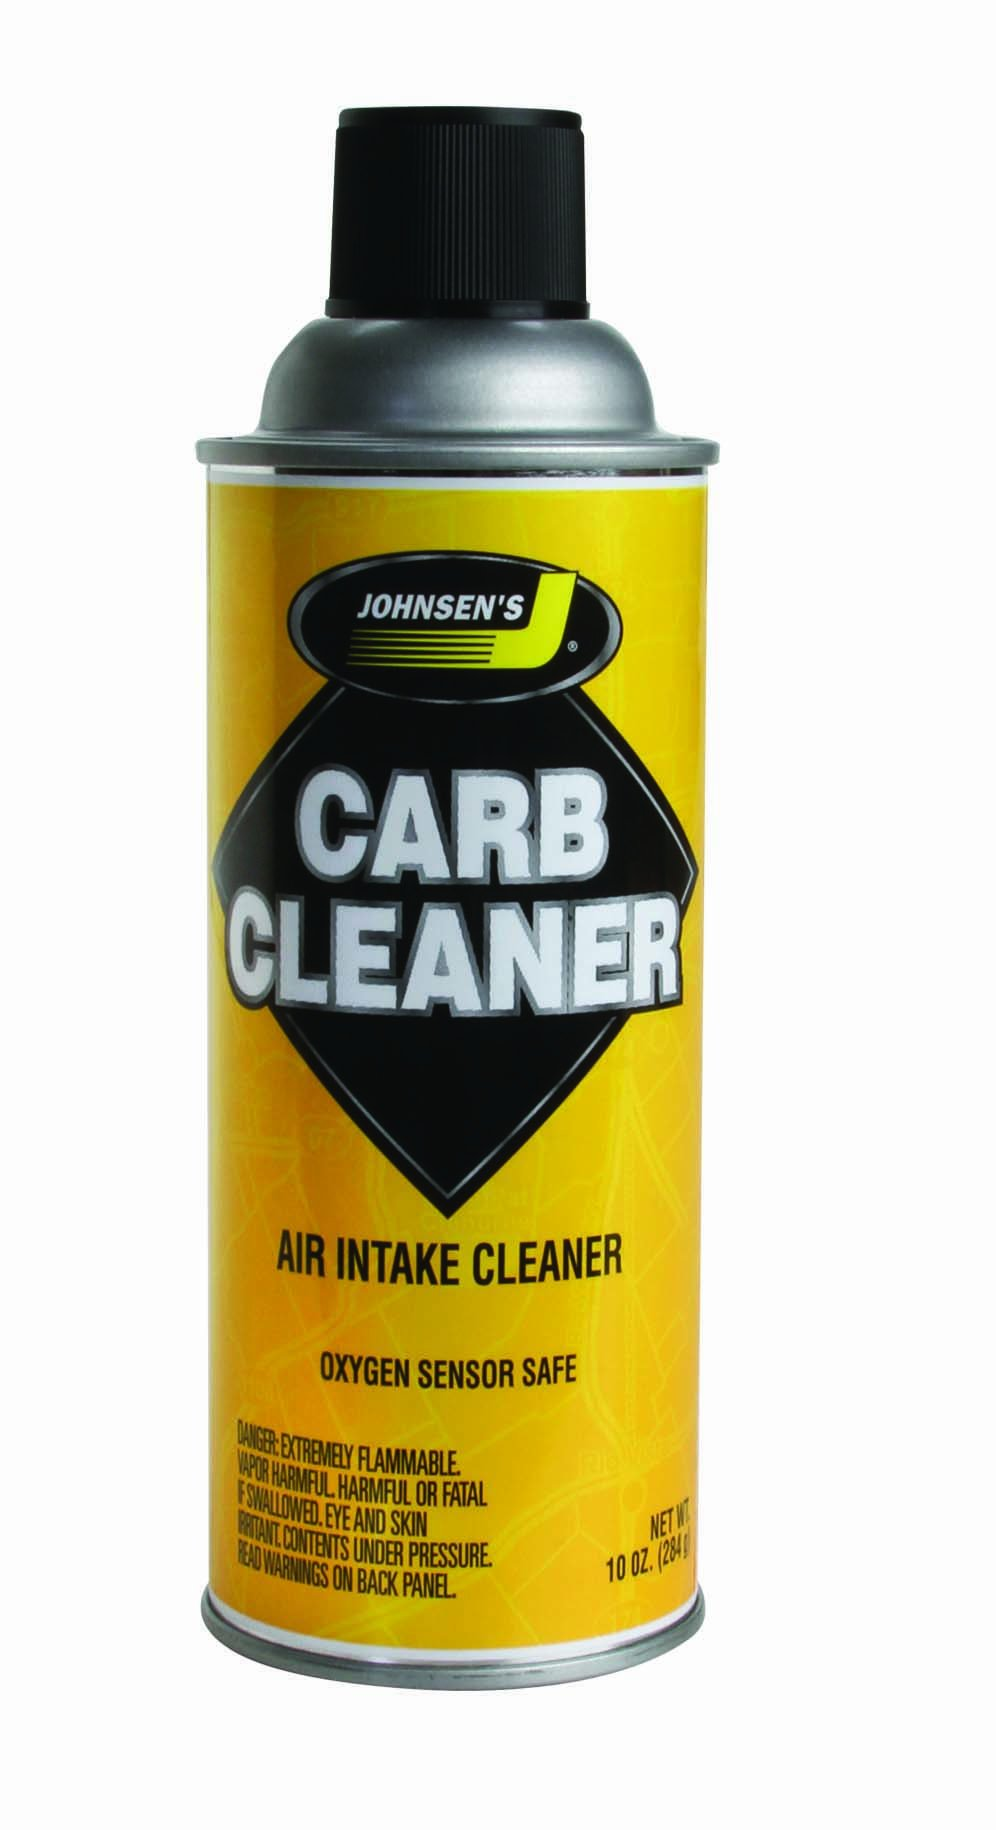 Johnsen's 4641NC-12PK Non-VOC Compliant Carburetor Cleaner Spray - 10 oz., (Pack of 12) by Johnsen's